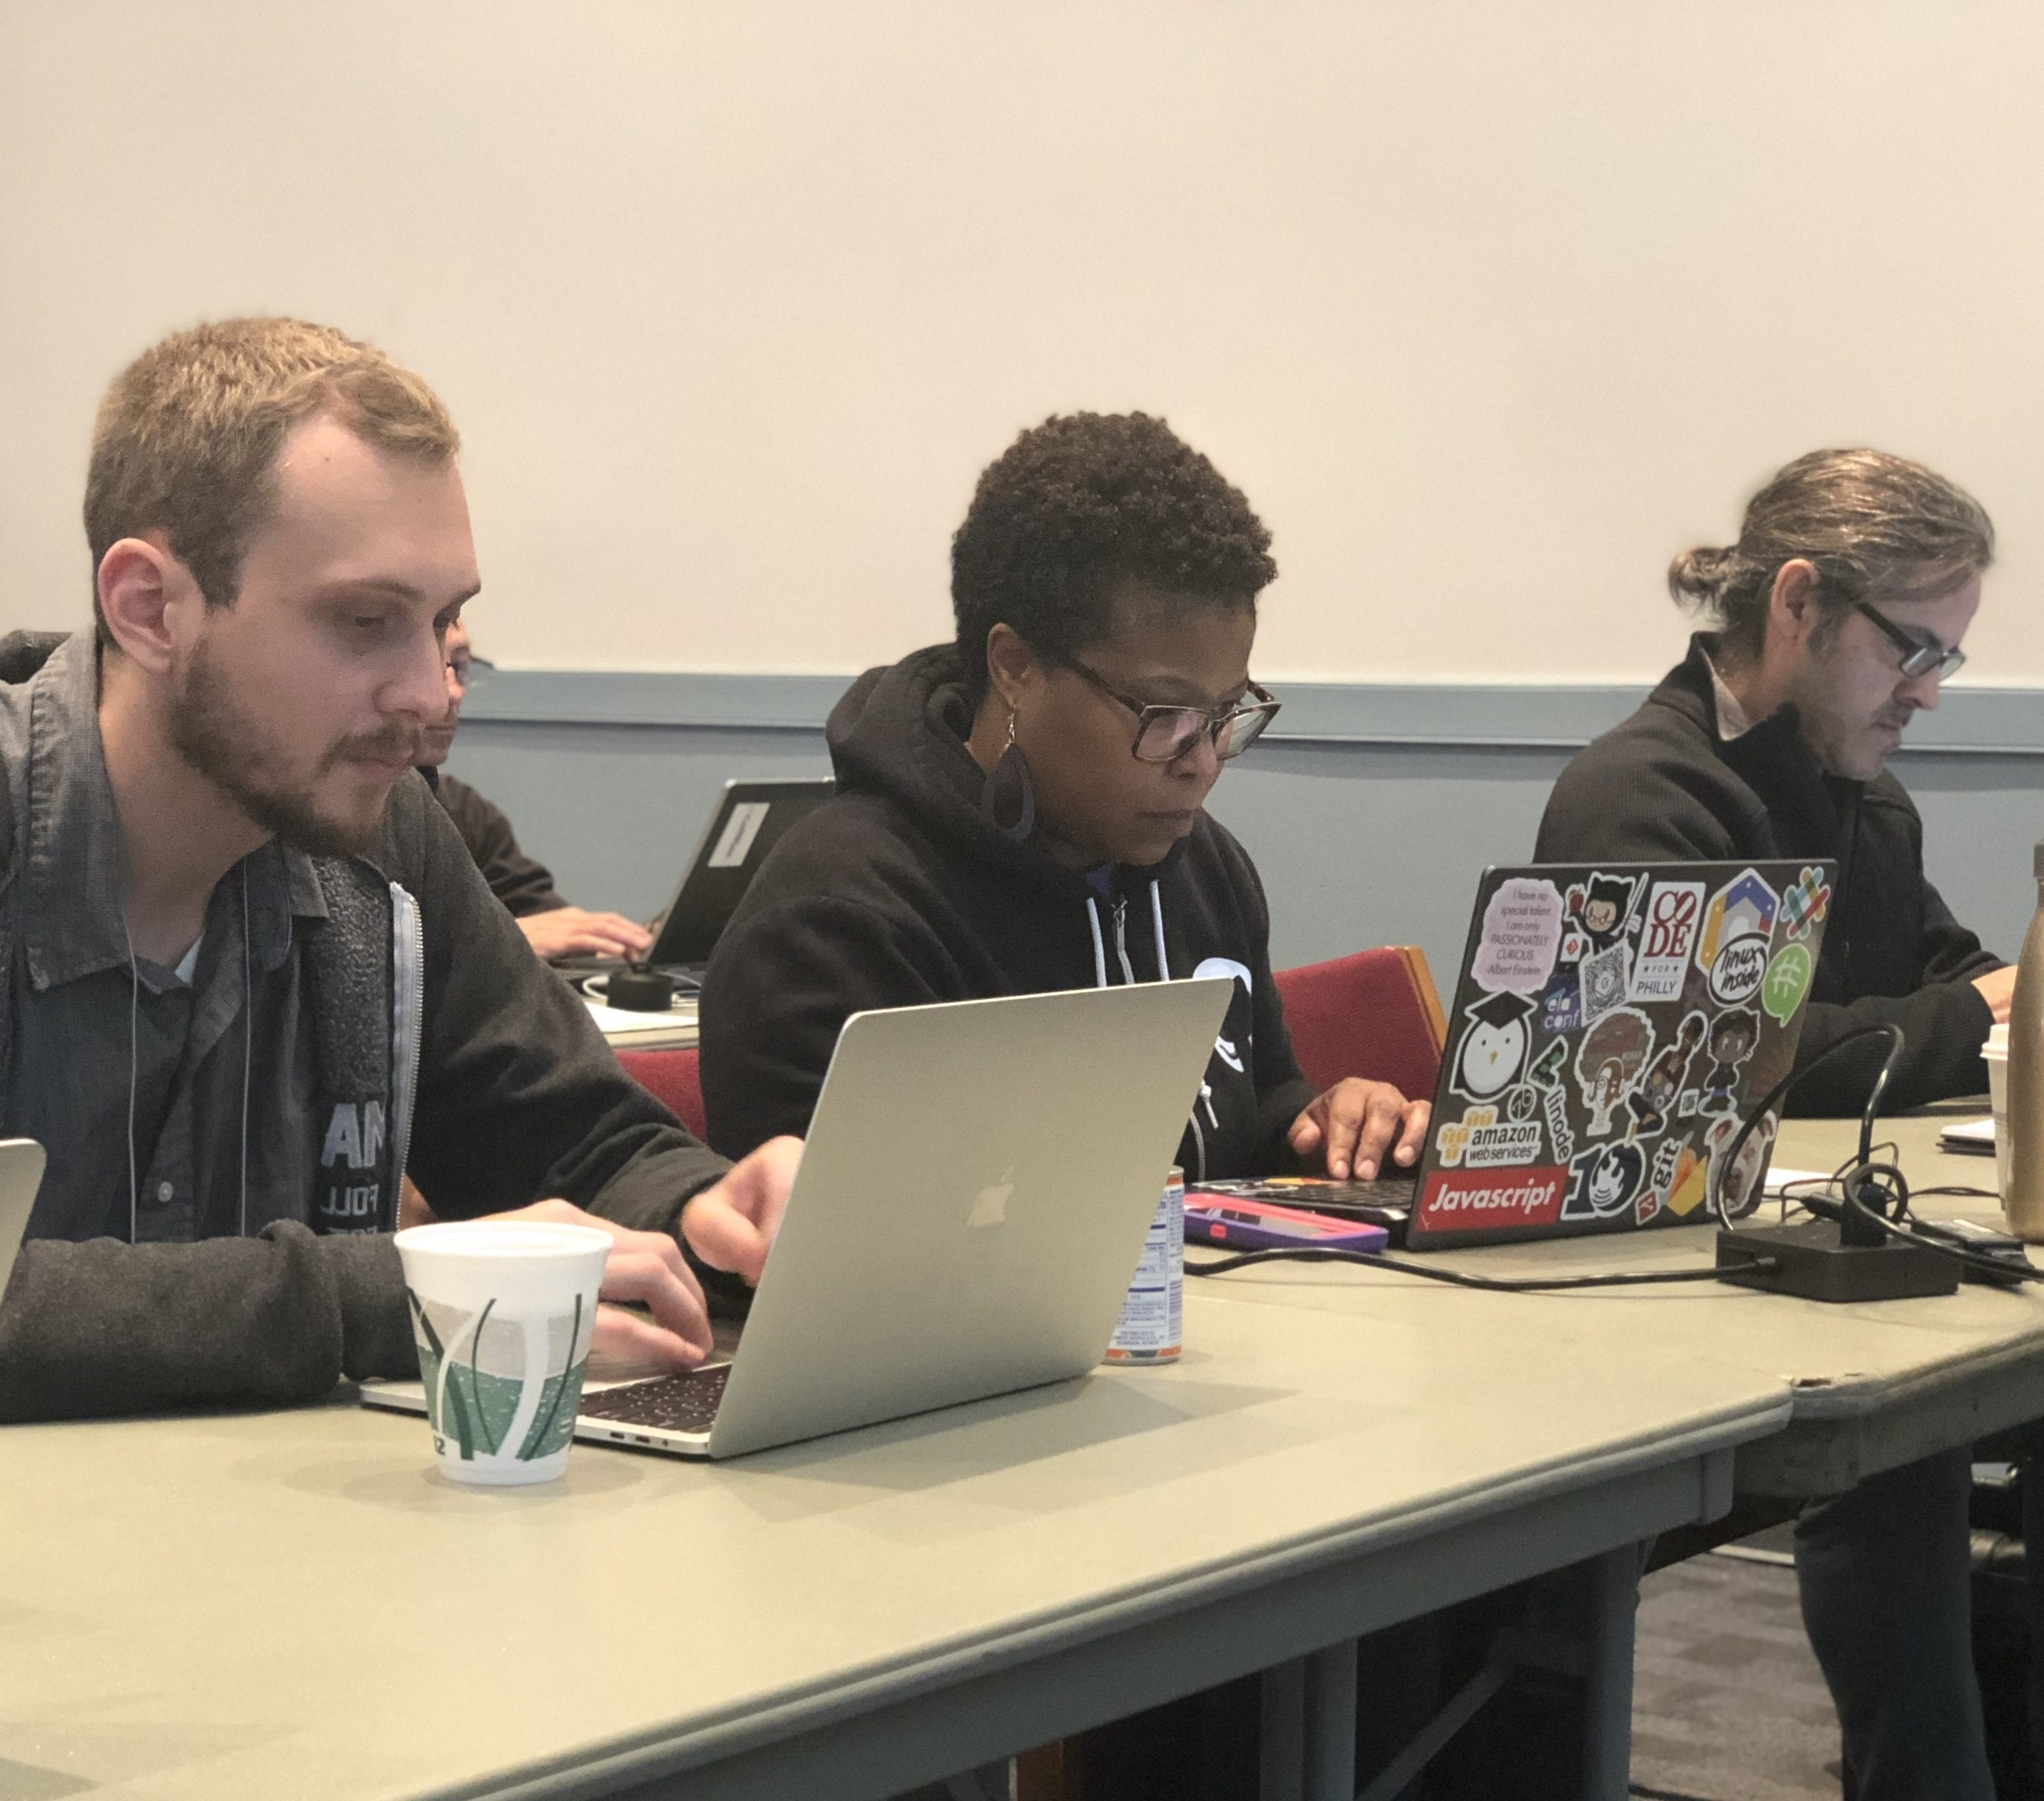 Three people participating in a workshop.